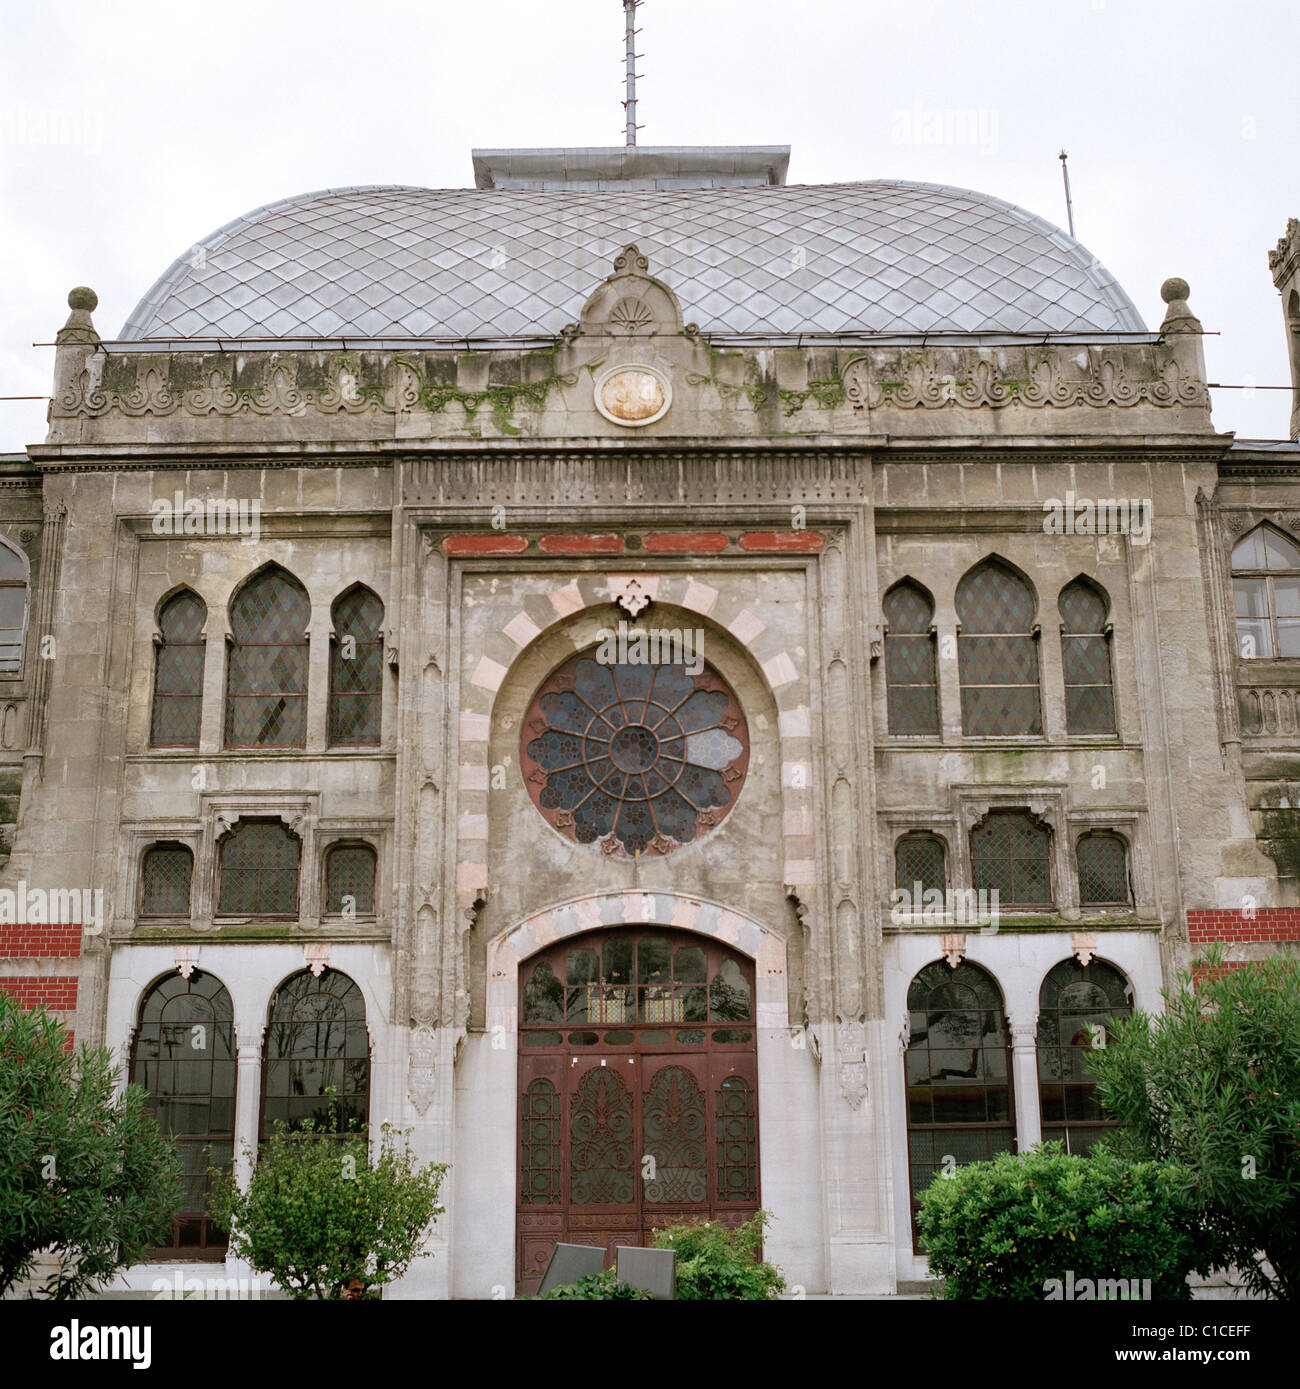 Sirkeci Train Railway Station in Eminonu in Istanbul in Turkey in Middle East Asia. Orient Express History Historical - Stock Image